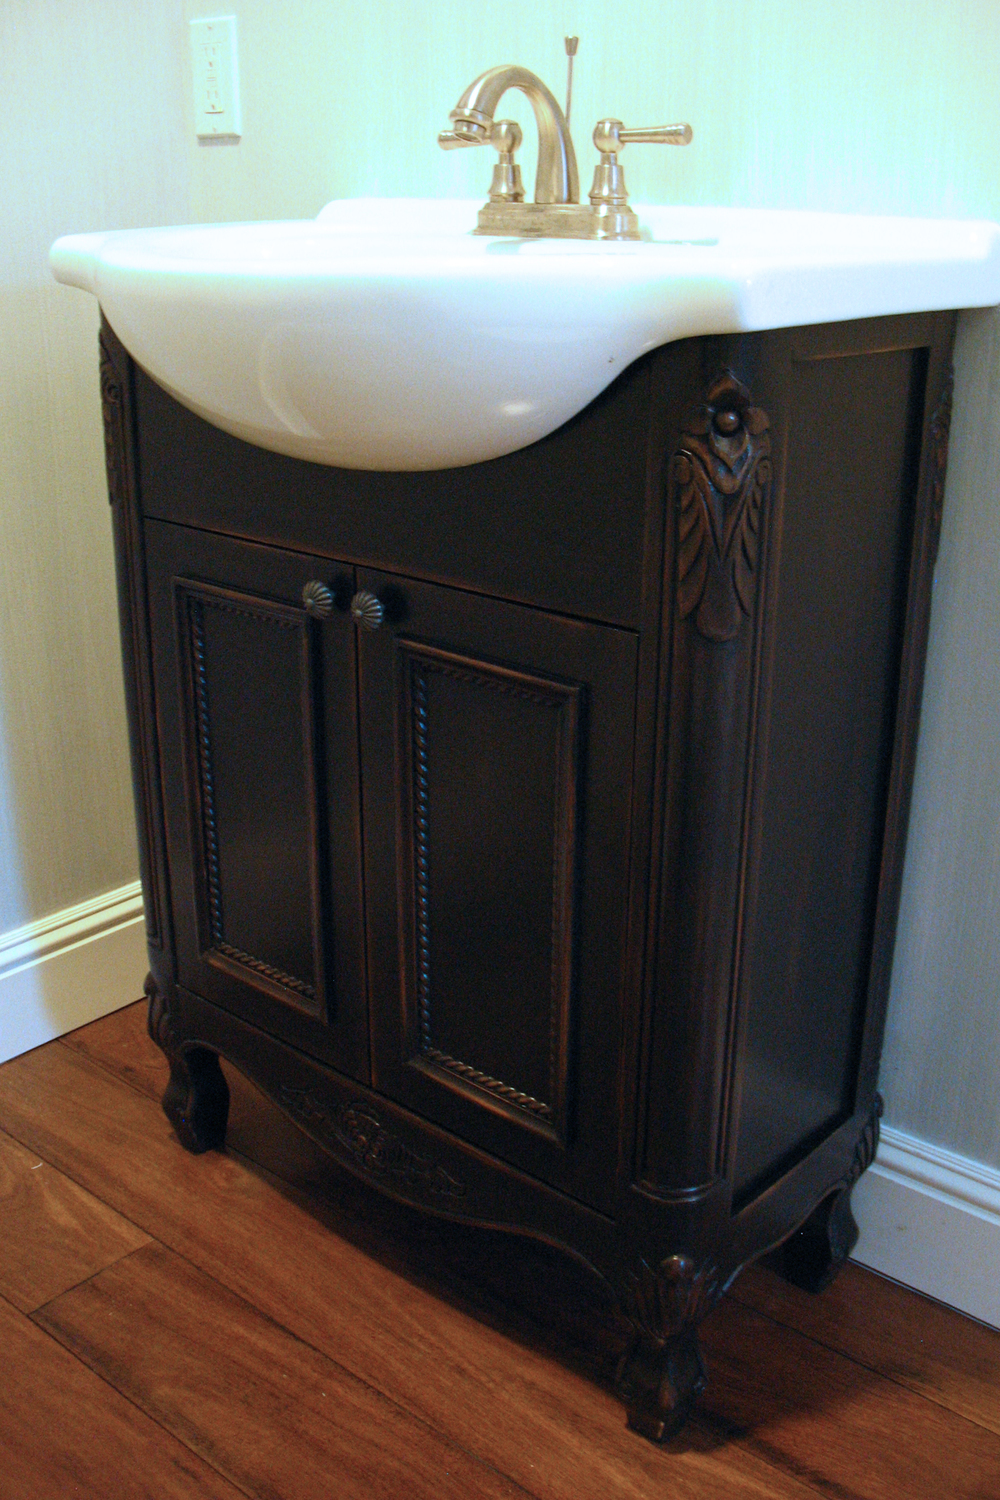 antiqued bath cabinet.jpg